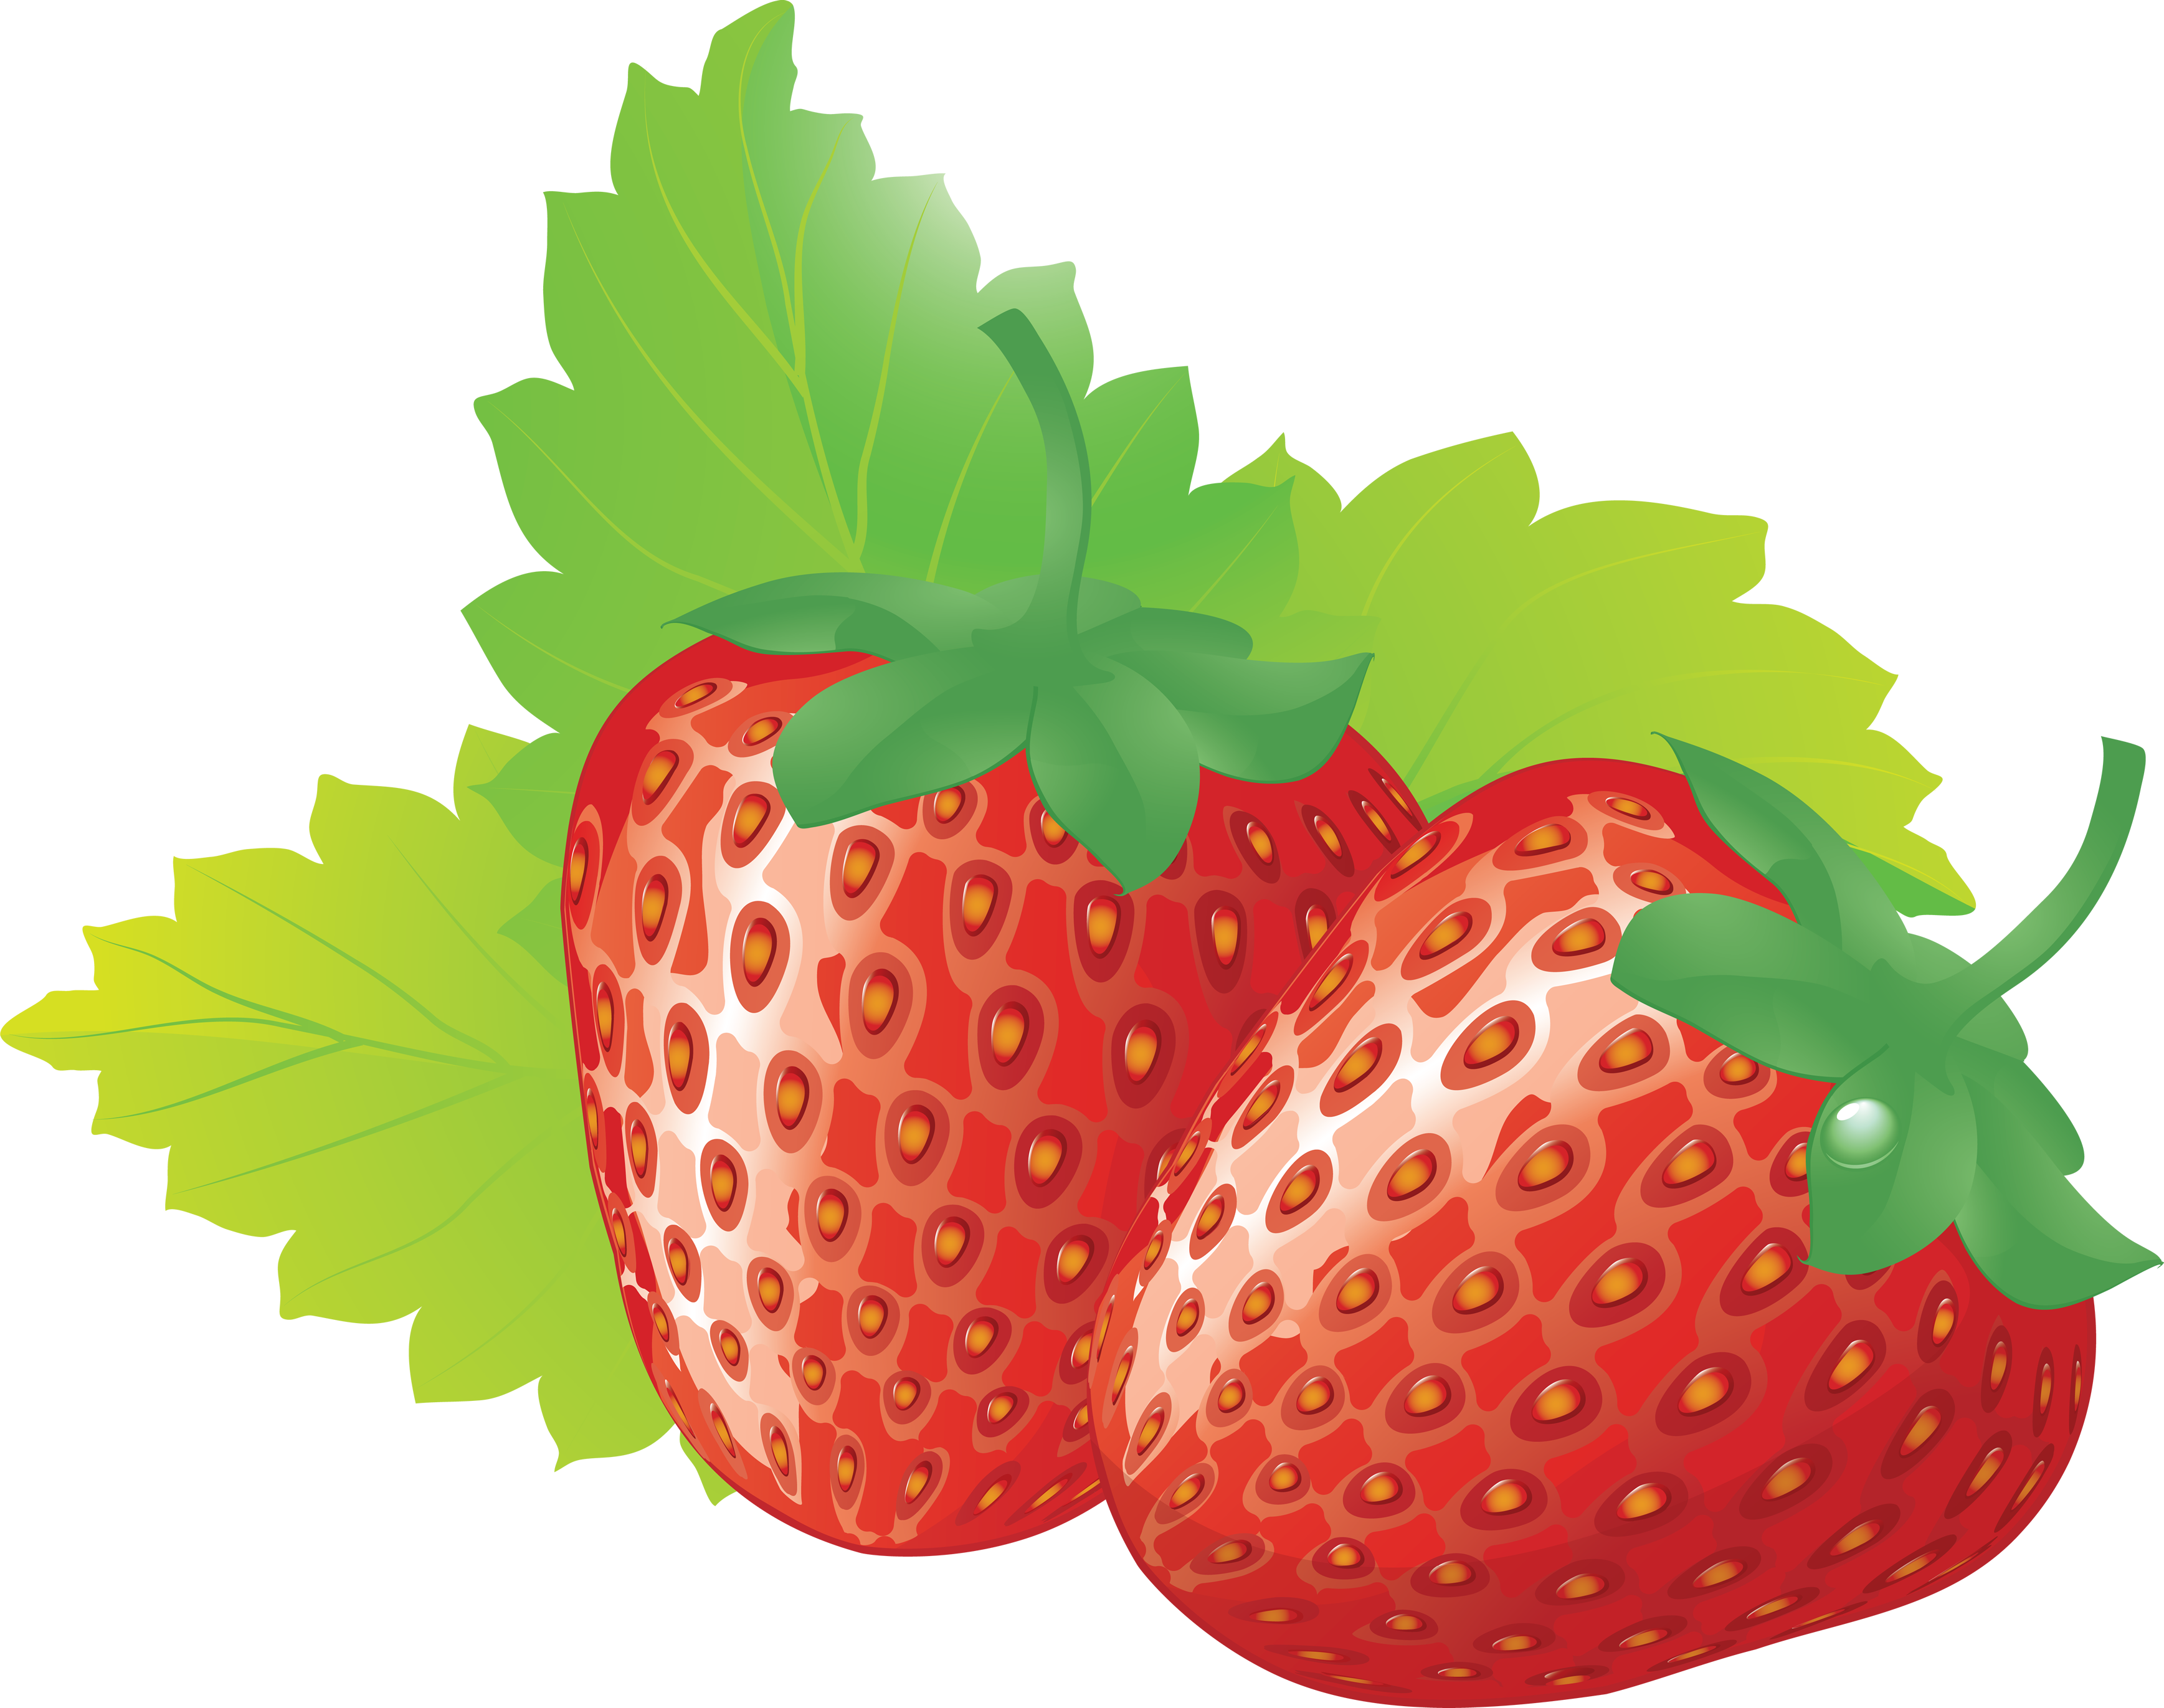 Strawberry farmer strawberries clipart free clip art images image 2.